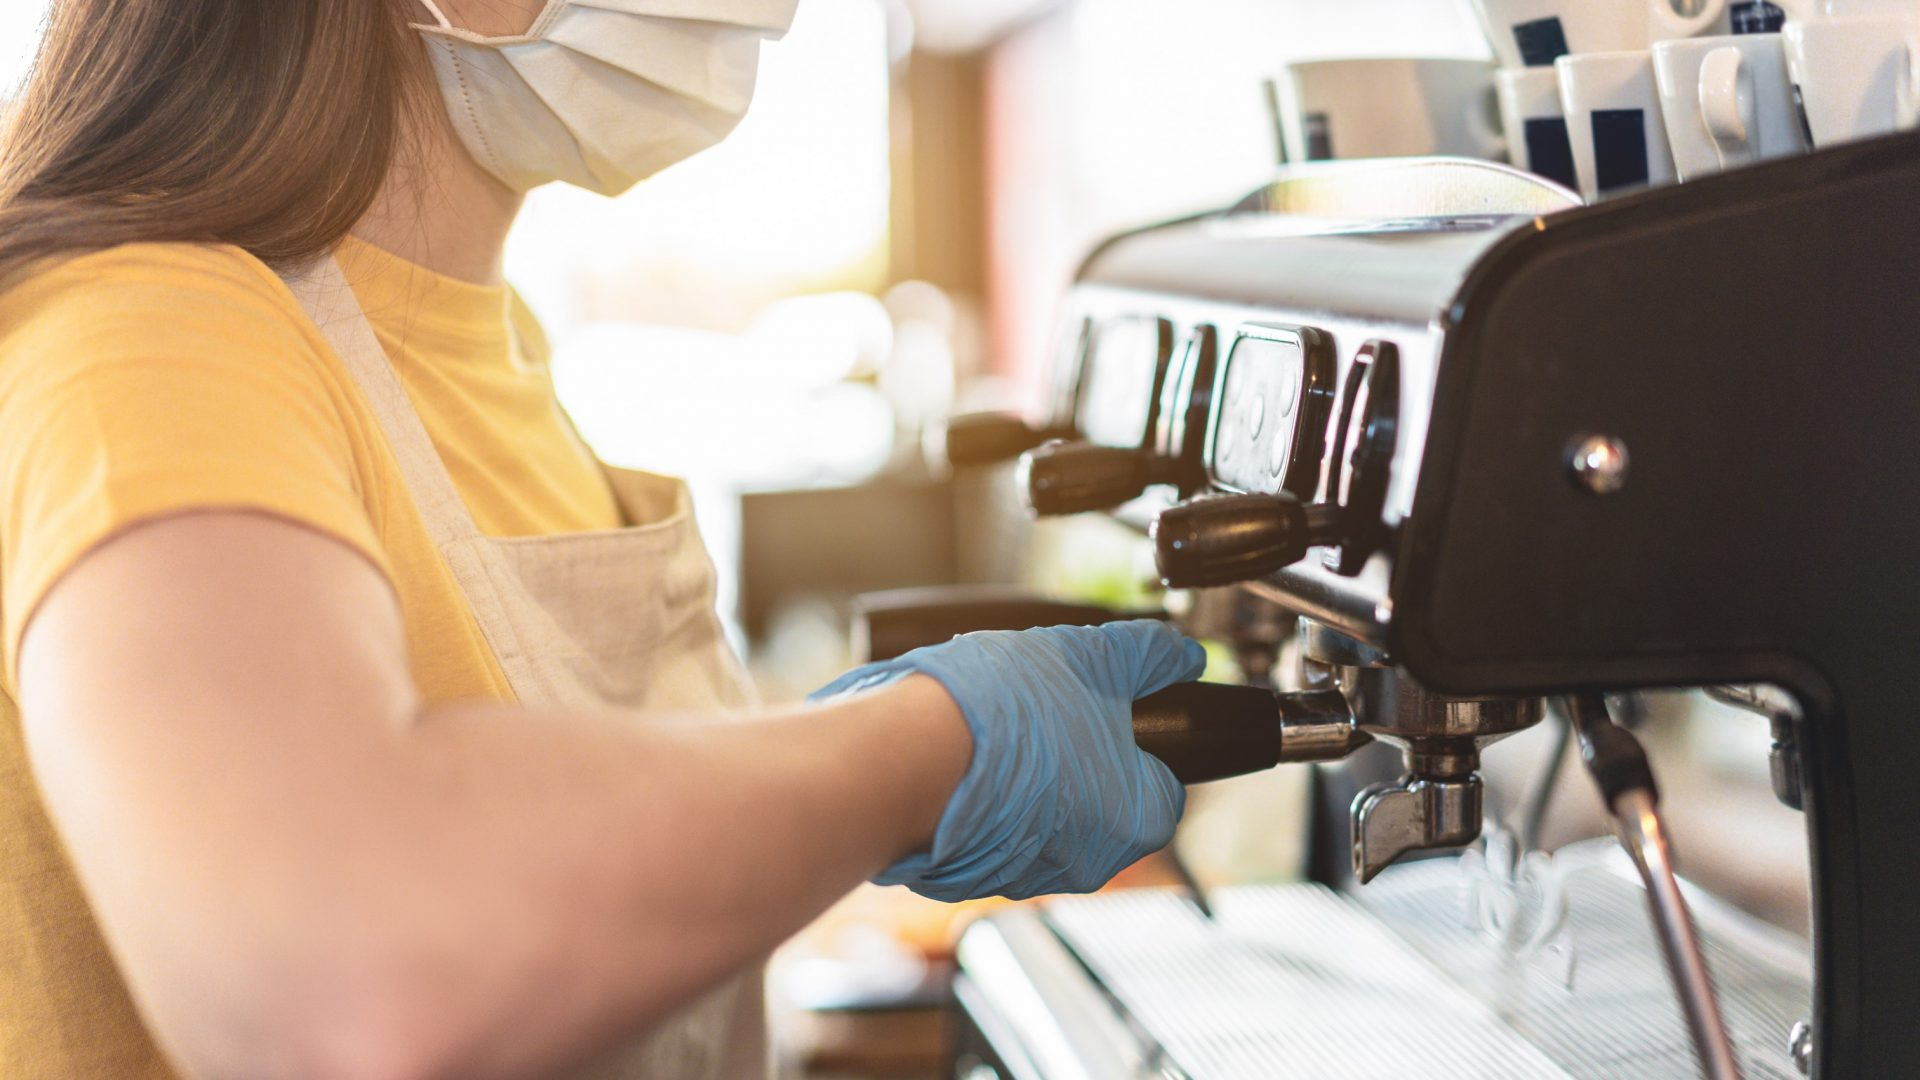 Young female working inside cafeteria bakery while making coffee wearing gloves and face mask for coronavirus spread prevention - Protective measures at work during Covid-19 outbreak - Focus on hand.